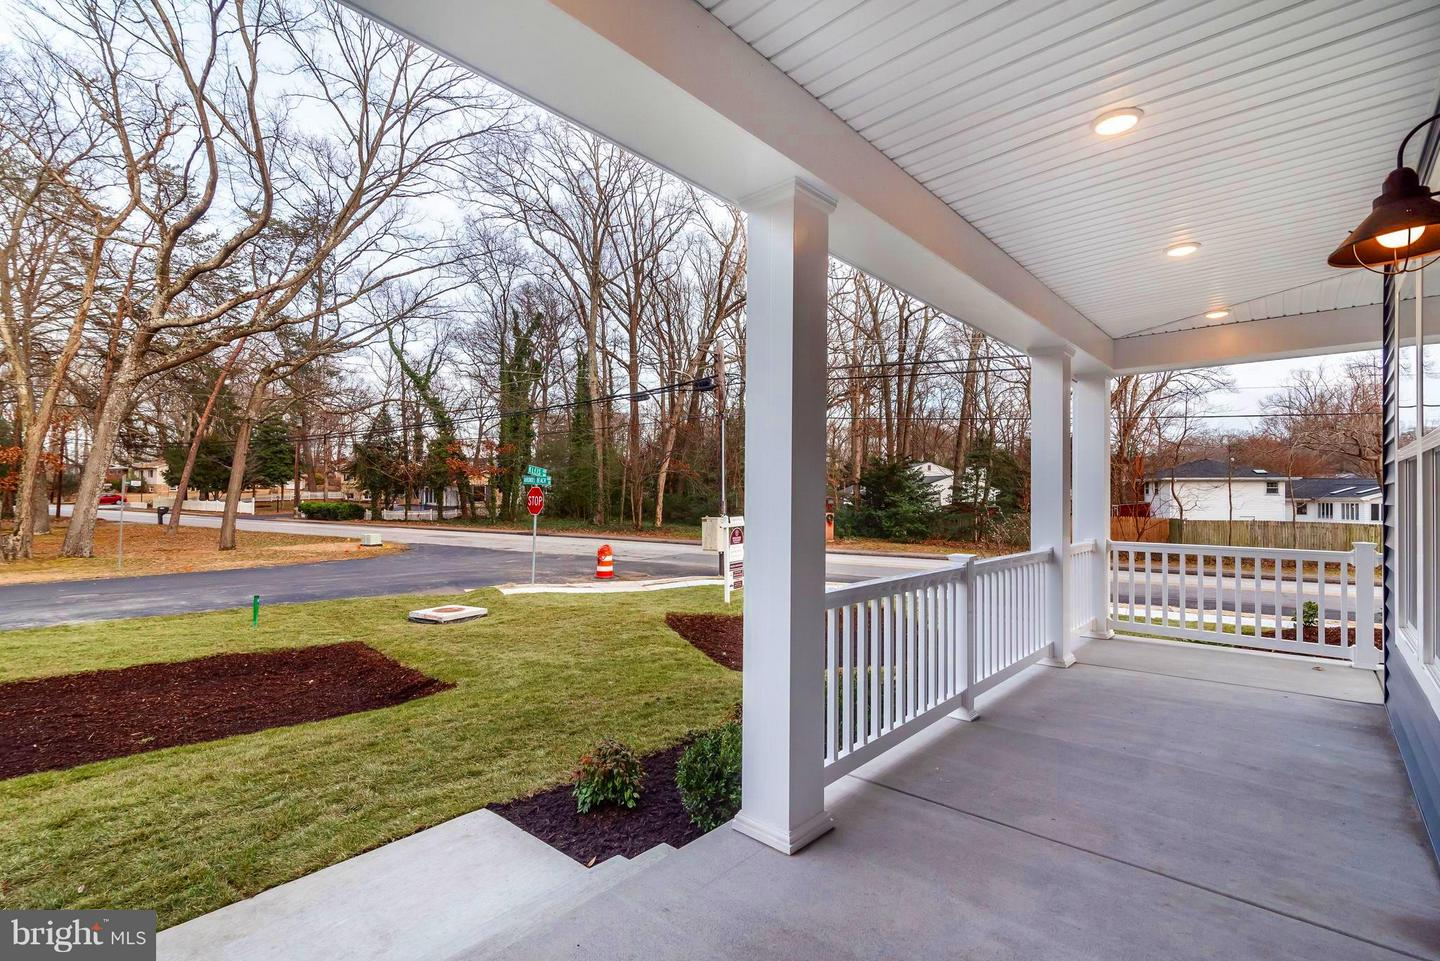 Additional photo for property listing at 48 Kleis Rd Severna Park, Maryland 21146 United States